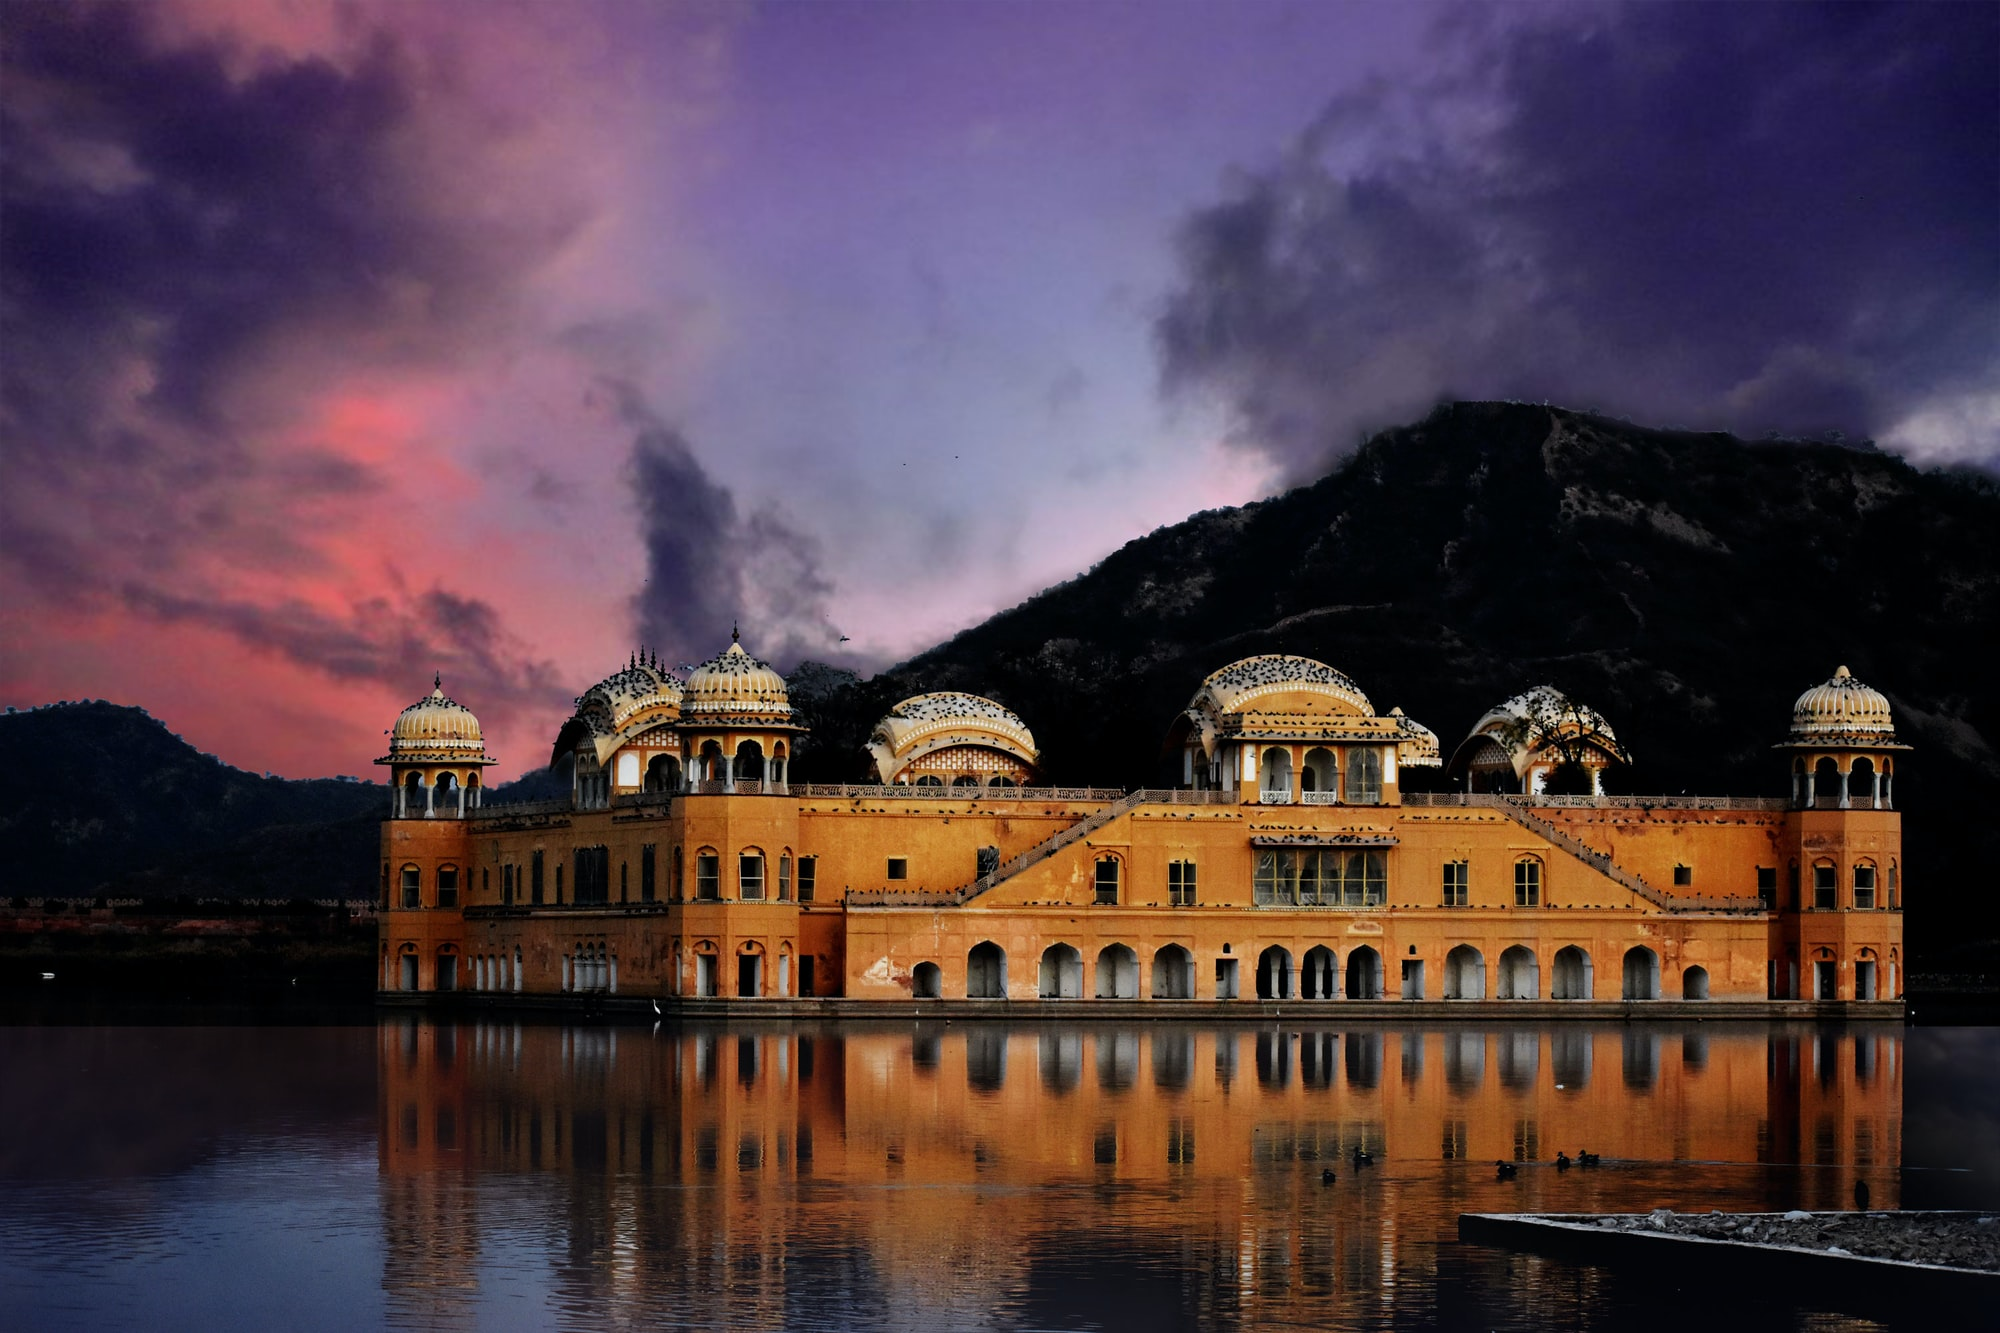 Made by Raja Ram Singh of Jaipur this incredible building sits on top of the lake in Jaipur.